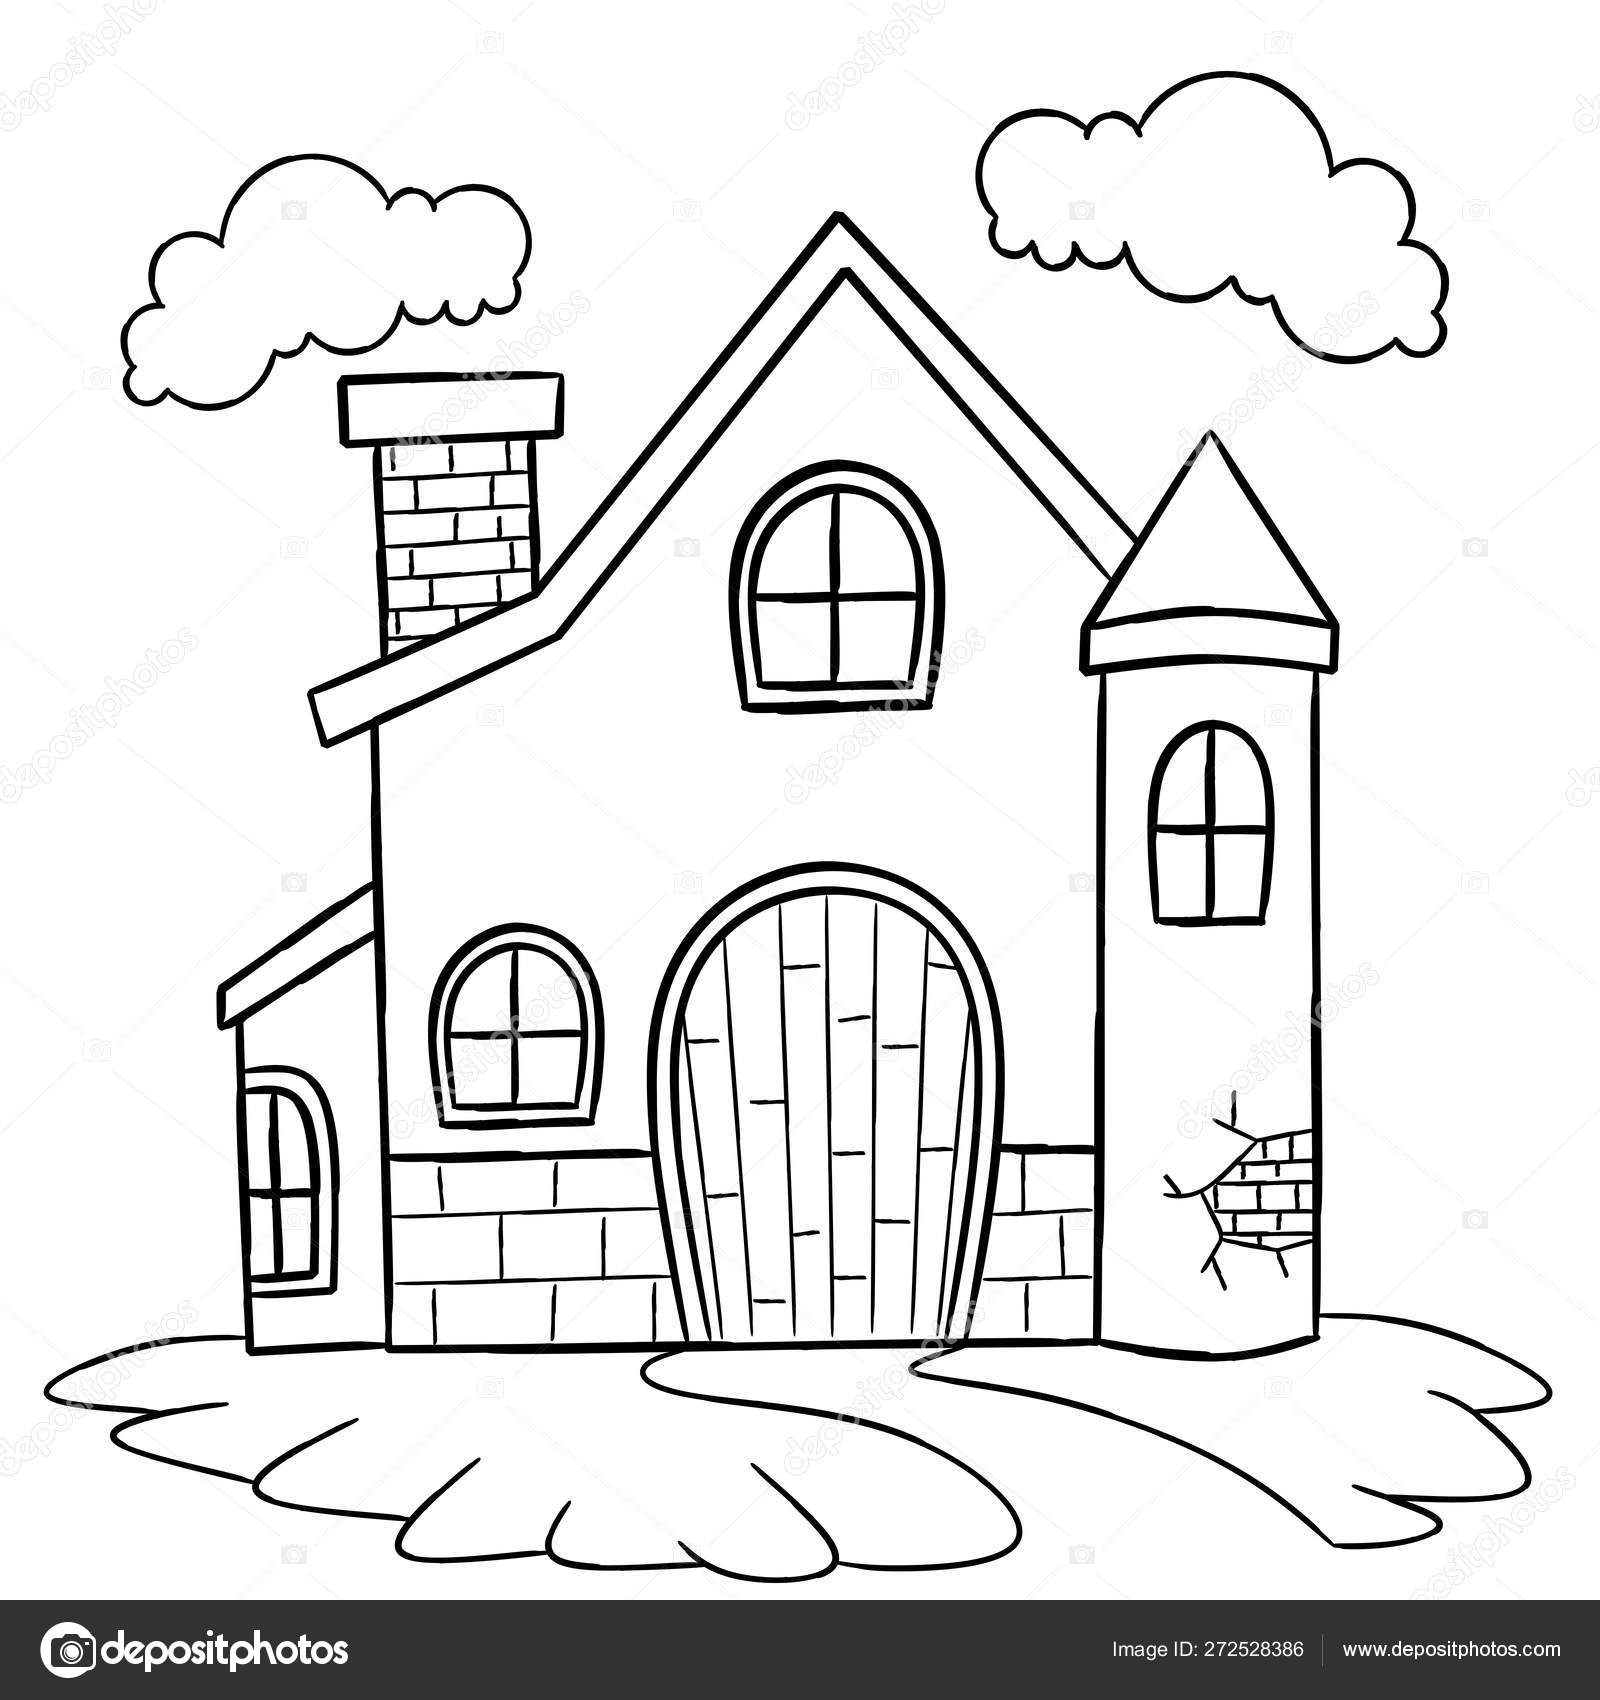 coloring pages houses house coloring page children stock vector dennyranch pages houses coloring